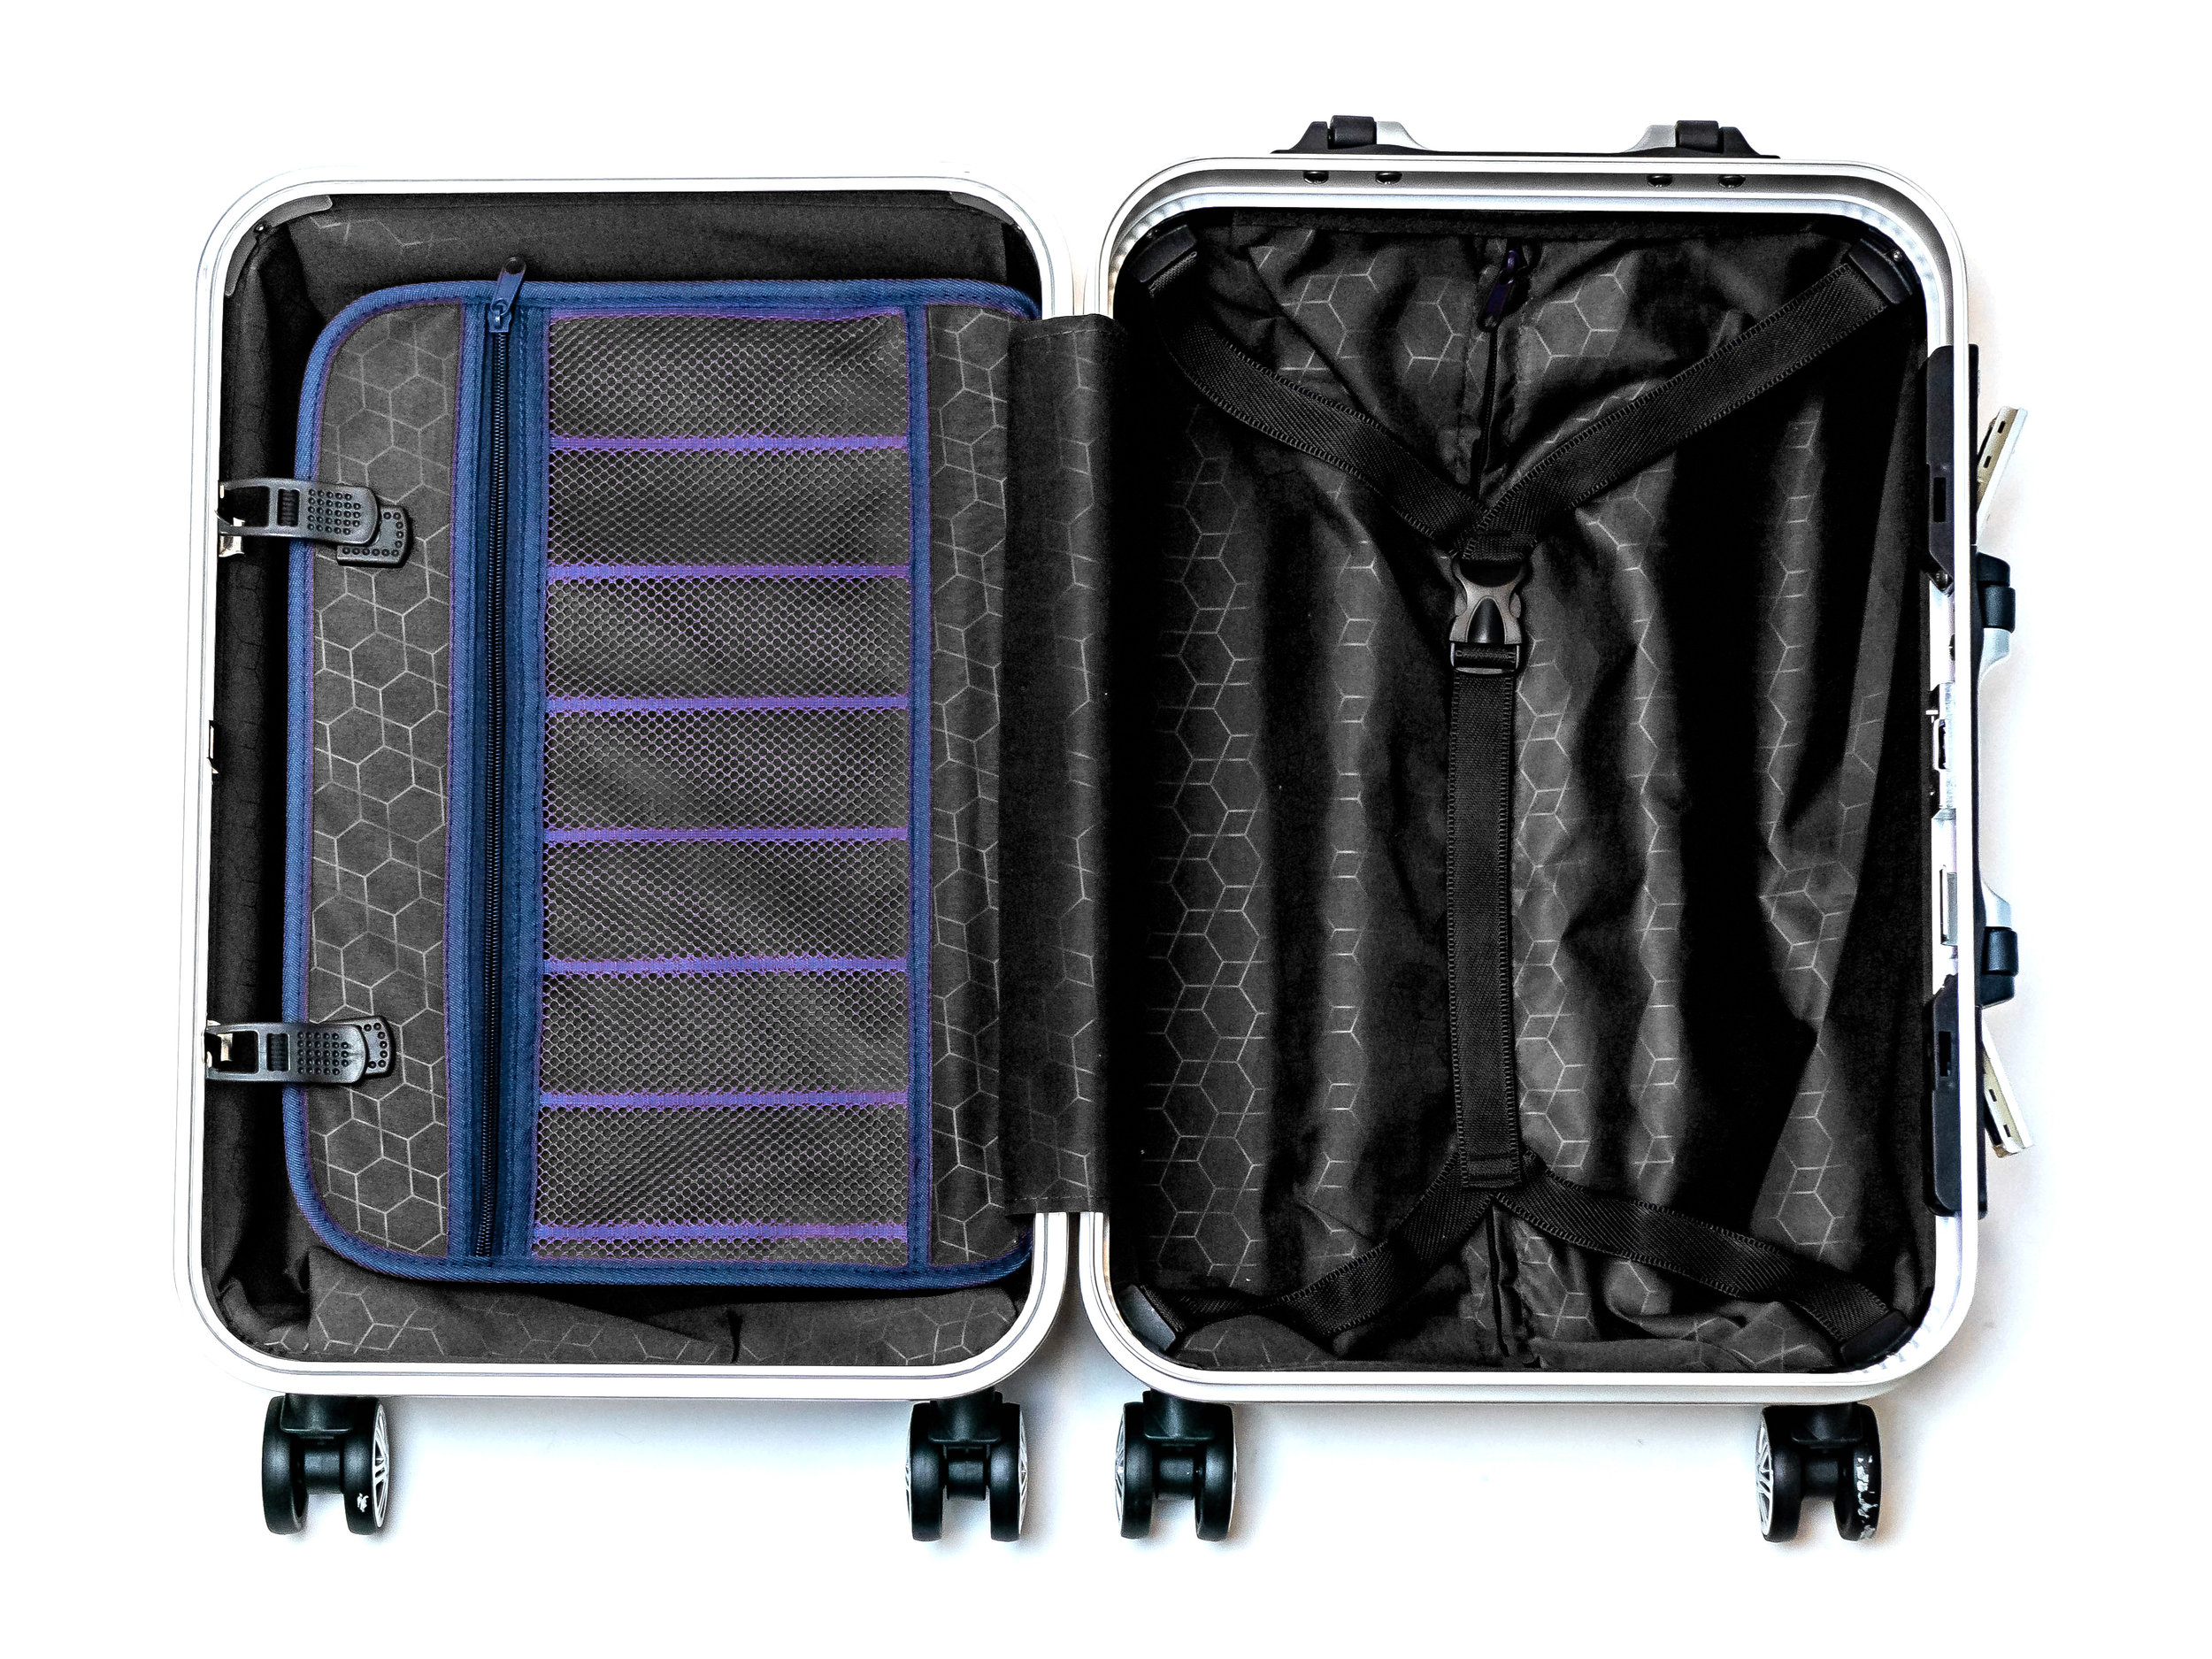 Pack more - with the included compression flap.